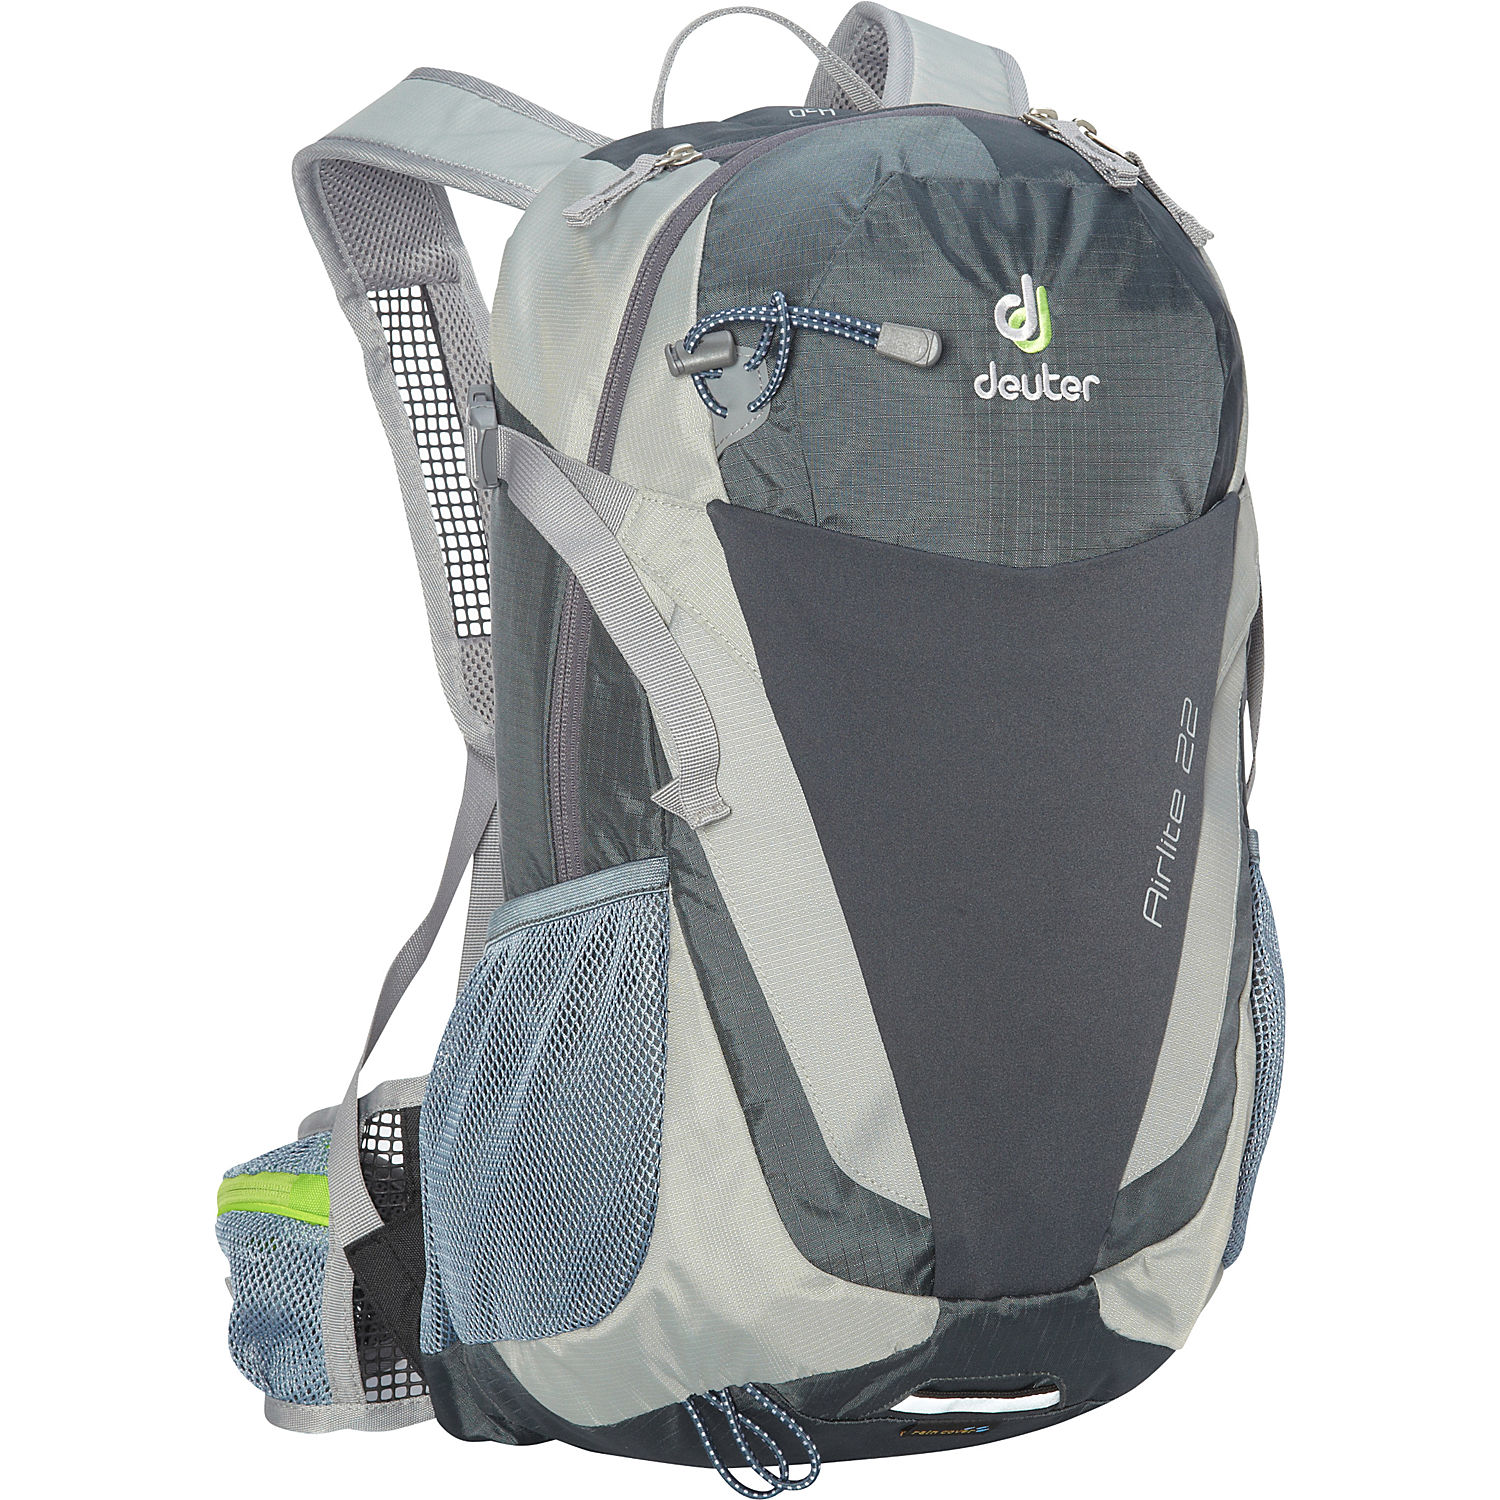 Deuter Airlite 22 Hiking Backpack Ebags Com